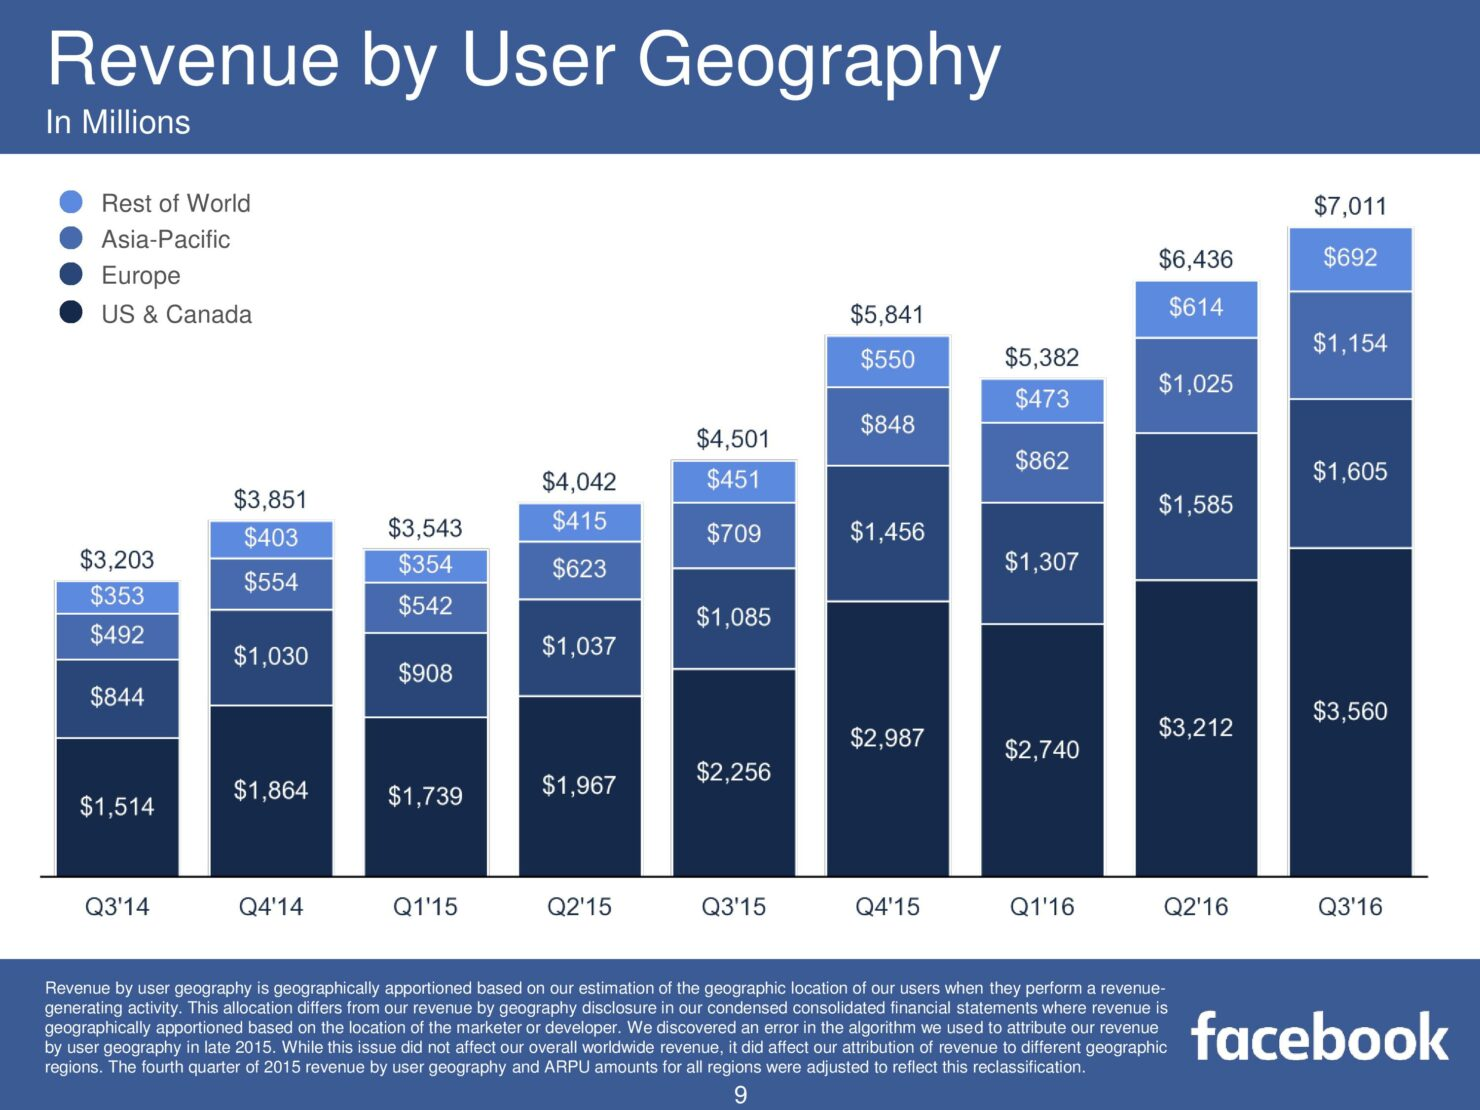 fb-q316-earnings-slides-page-009